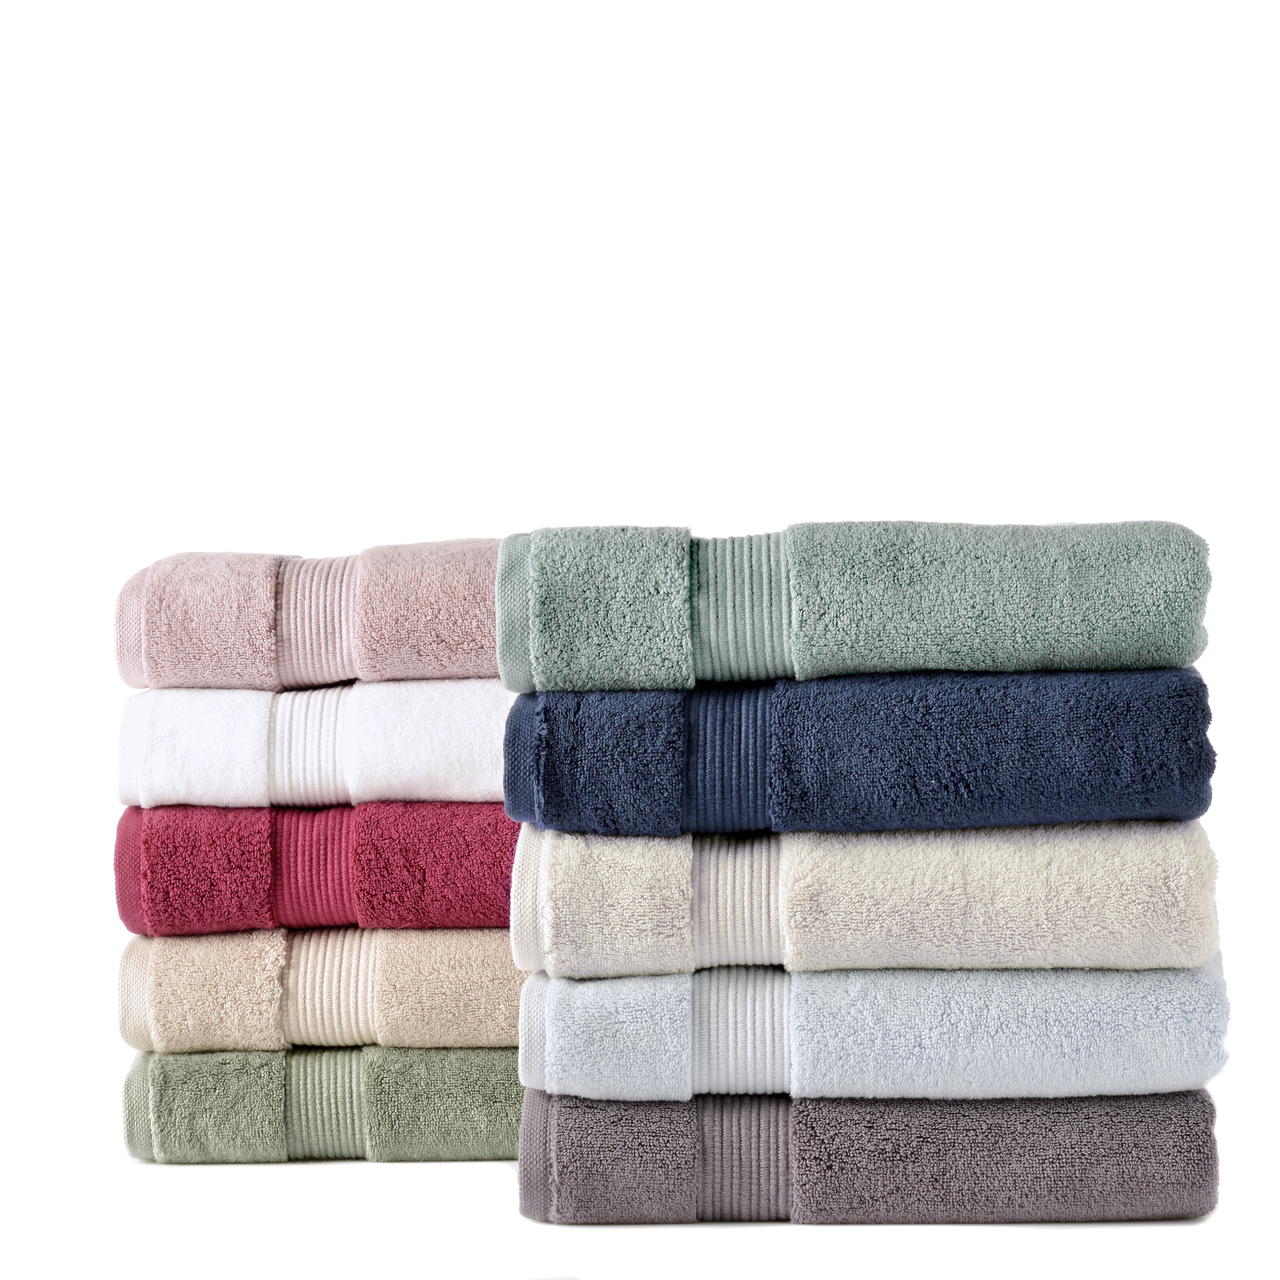 Our Zero Twist 650 gsm 100% cotton bath towels are soft and plush. They are colourfast and durable. The drying becomes more enhanced with every wash maintaing a soft and plush texture.  There are 10 beautiful colours to choose from all with matching accessories.